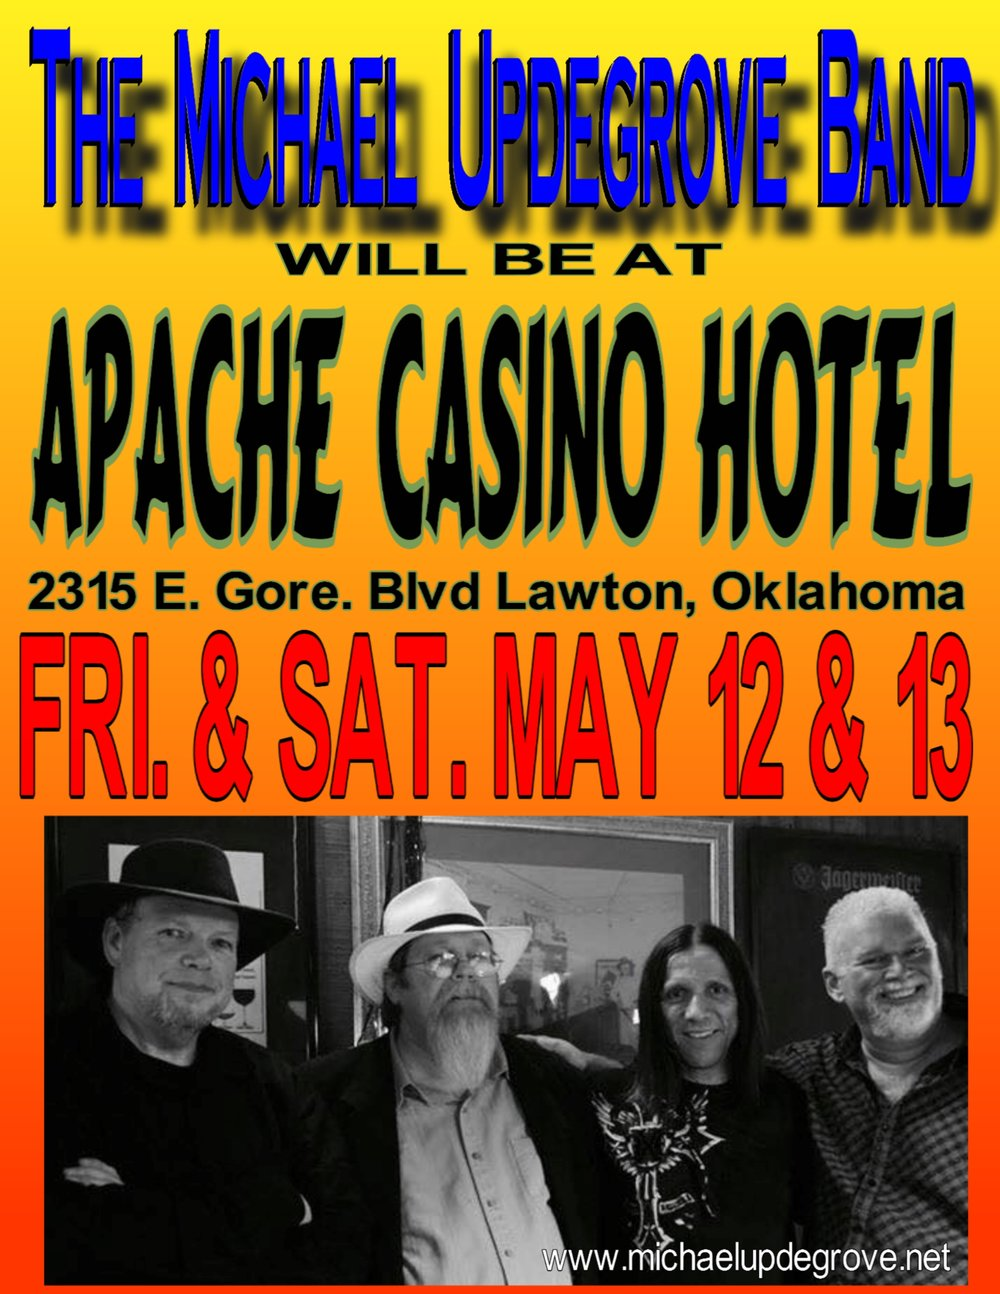 The Apache Casino MAY 2017.jpg